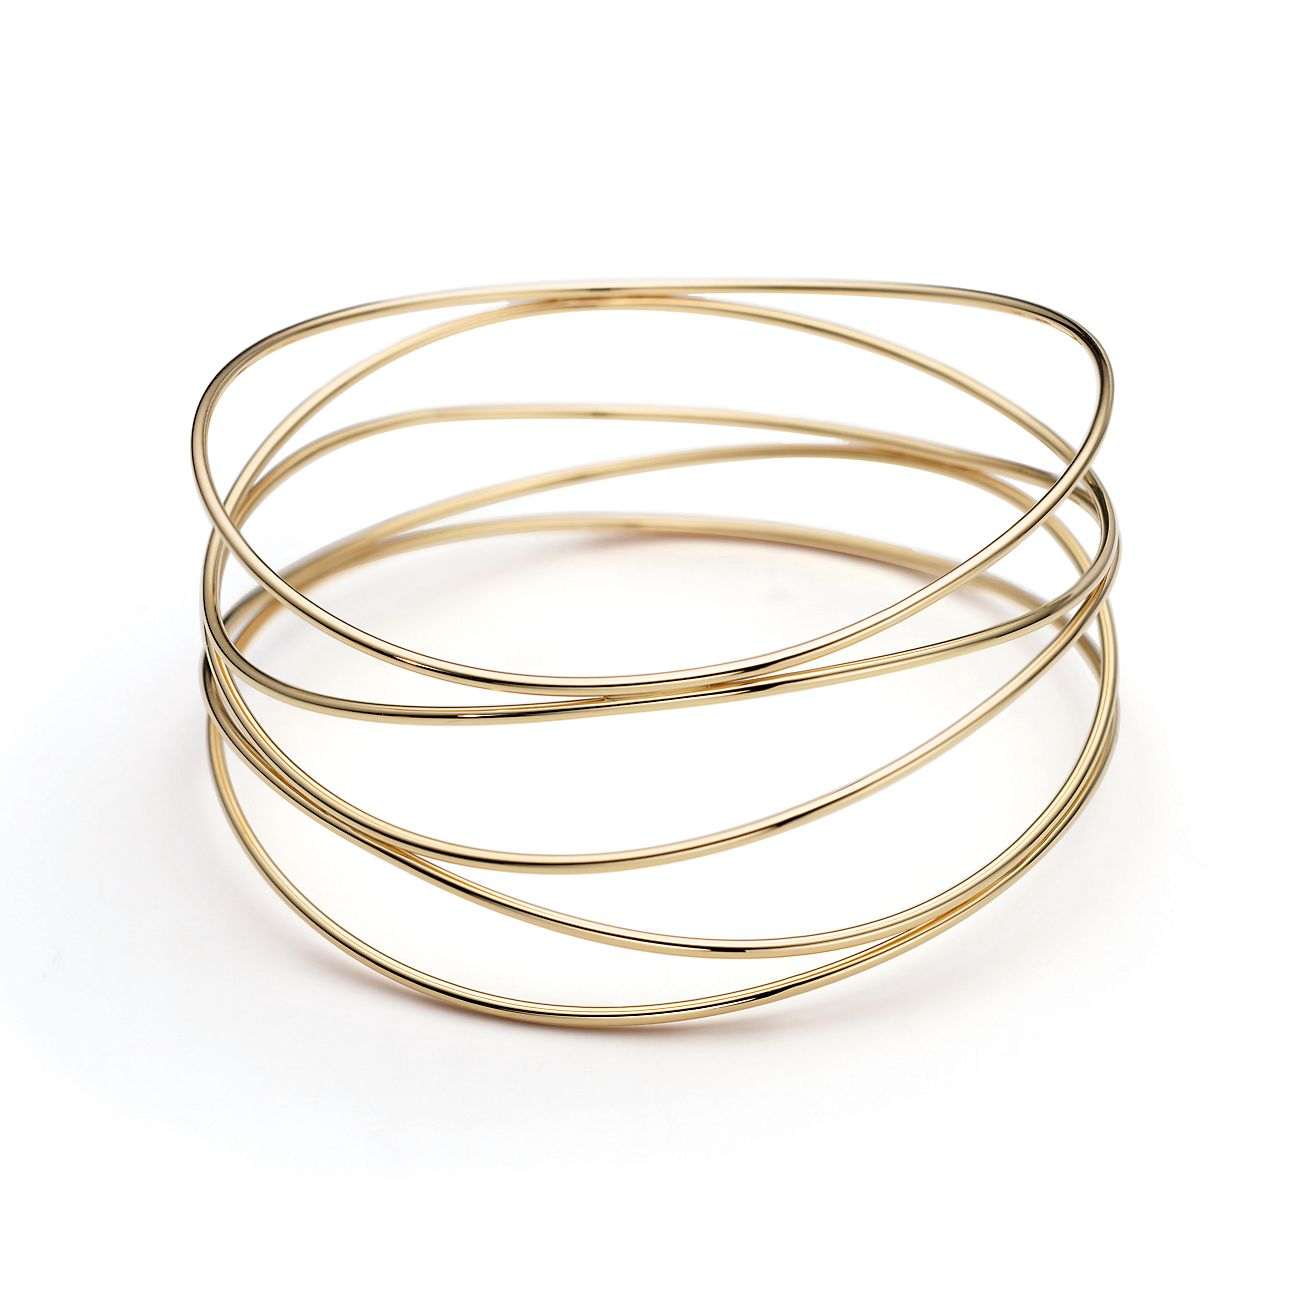 plain vintage large in bracelets steel kmvexo arm bangles from item party gold bangle fashion accessories jewelry bracelet women cuff for wide engravable